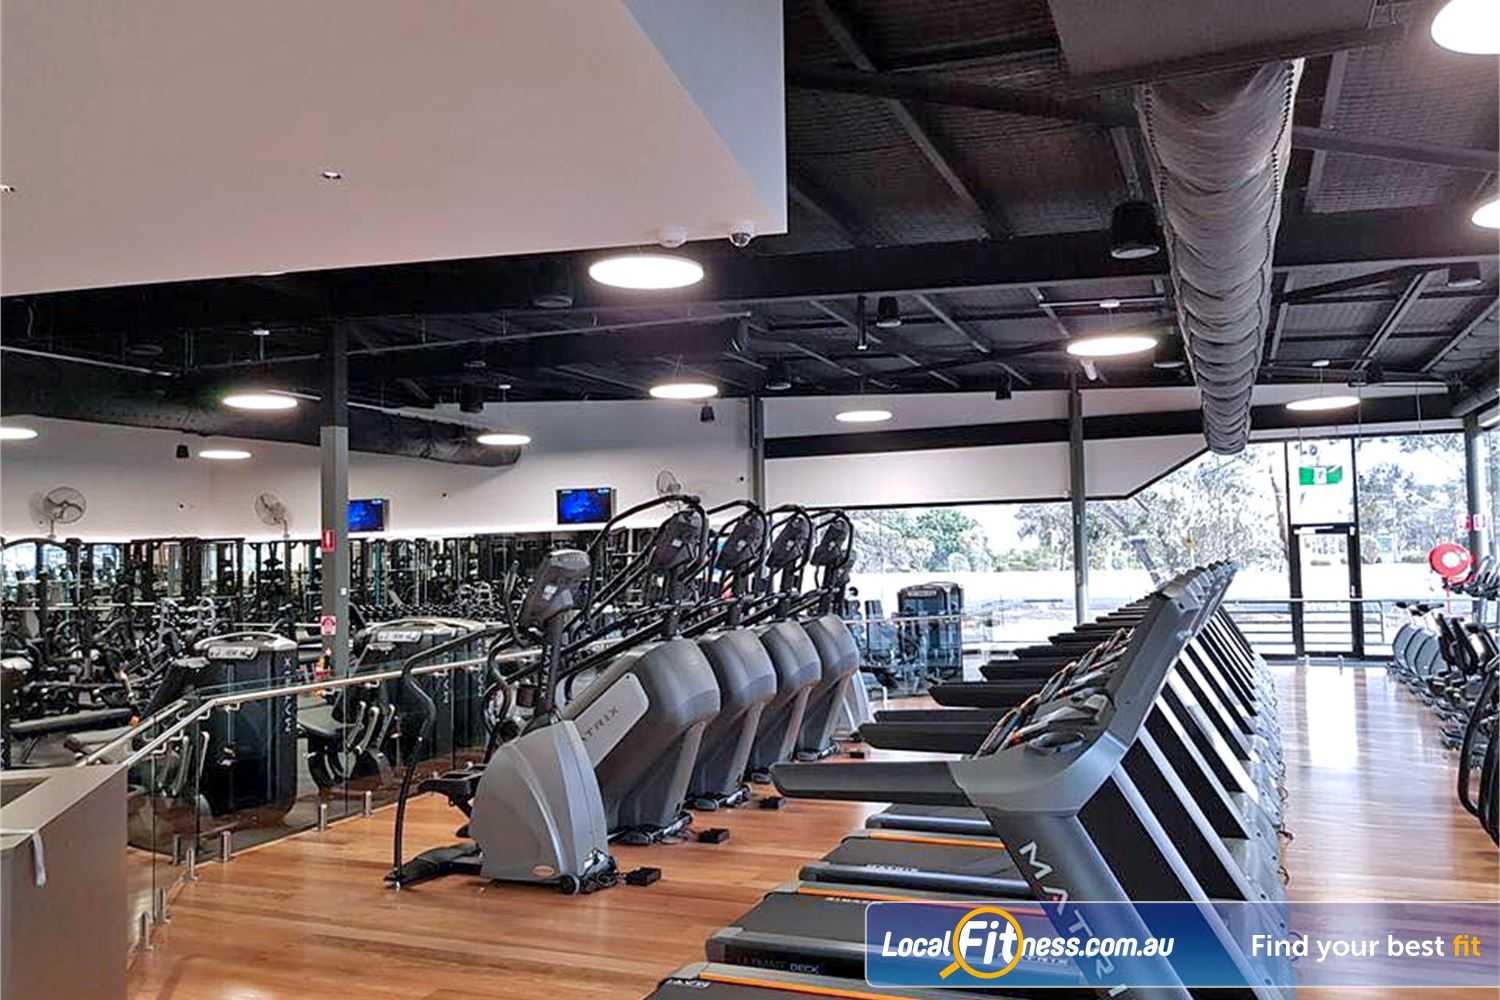 Goodlife Health Clubs Noarlunga Centre Enjoy your favorite shows in our high tech cardio area.